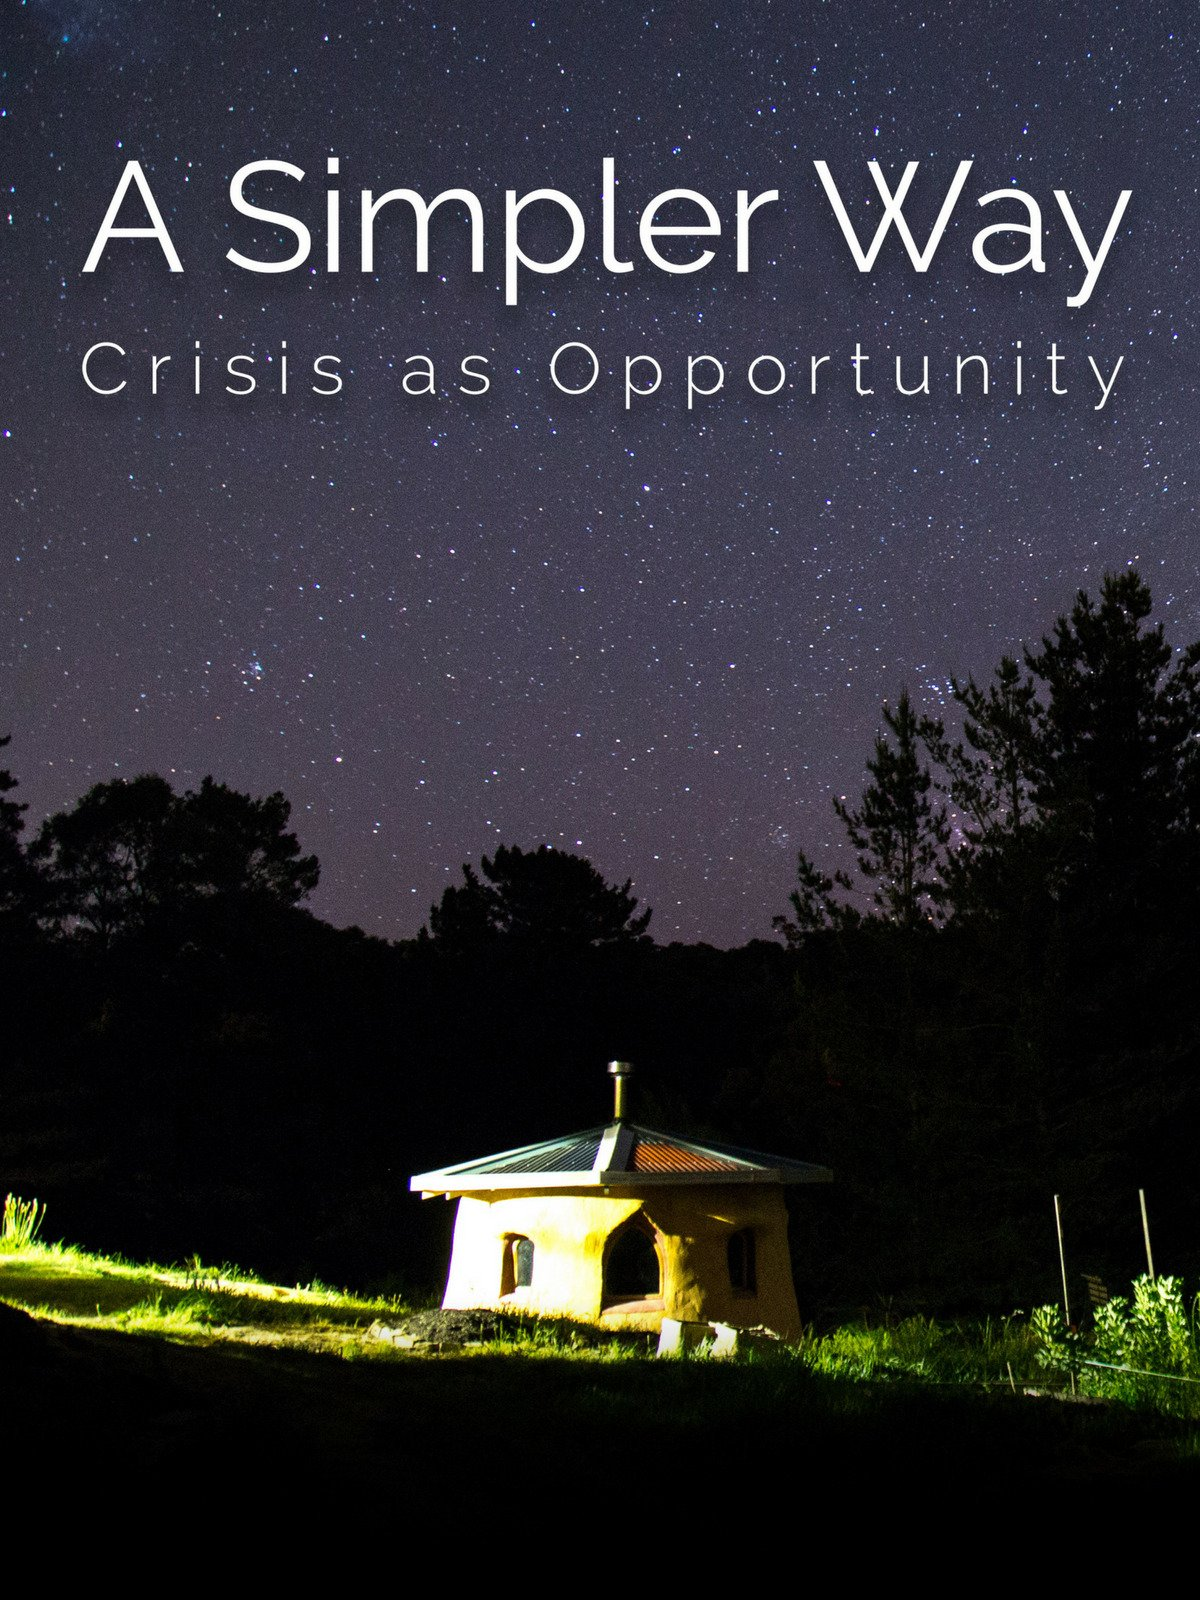 A Simpler Way: Crisis as Opportunity